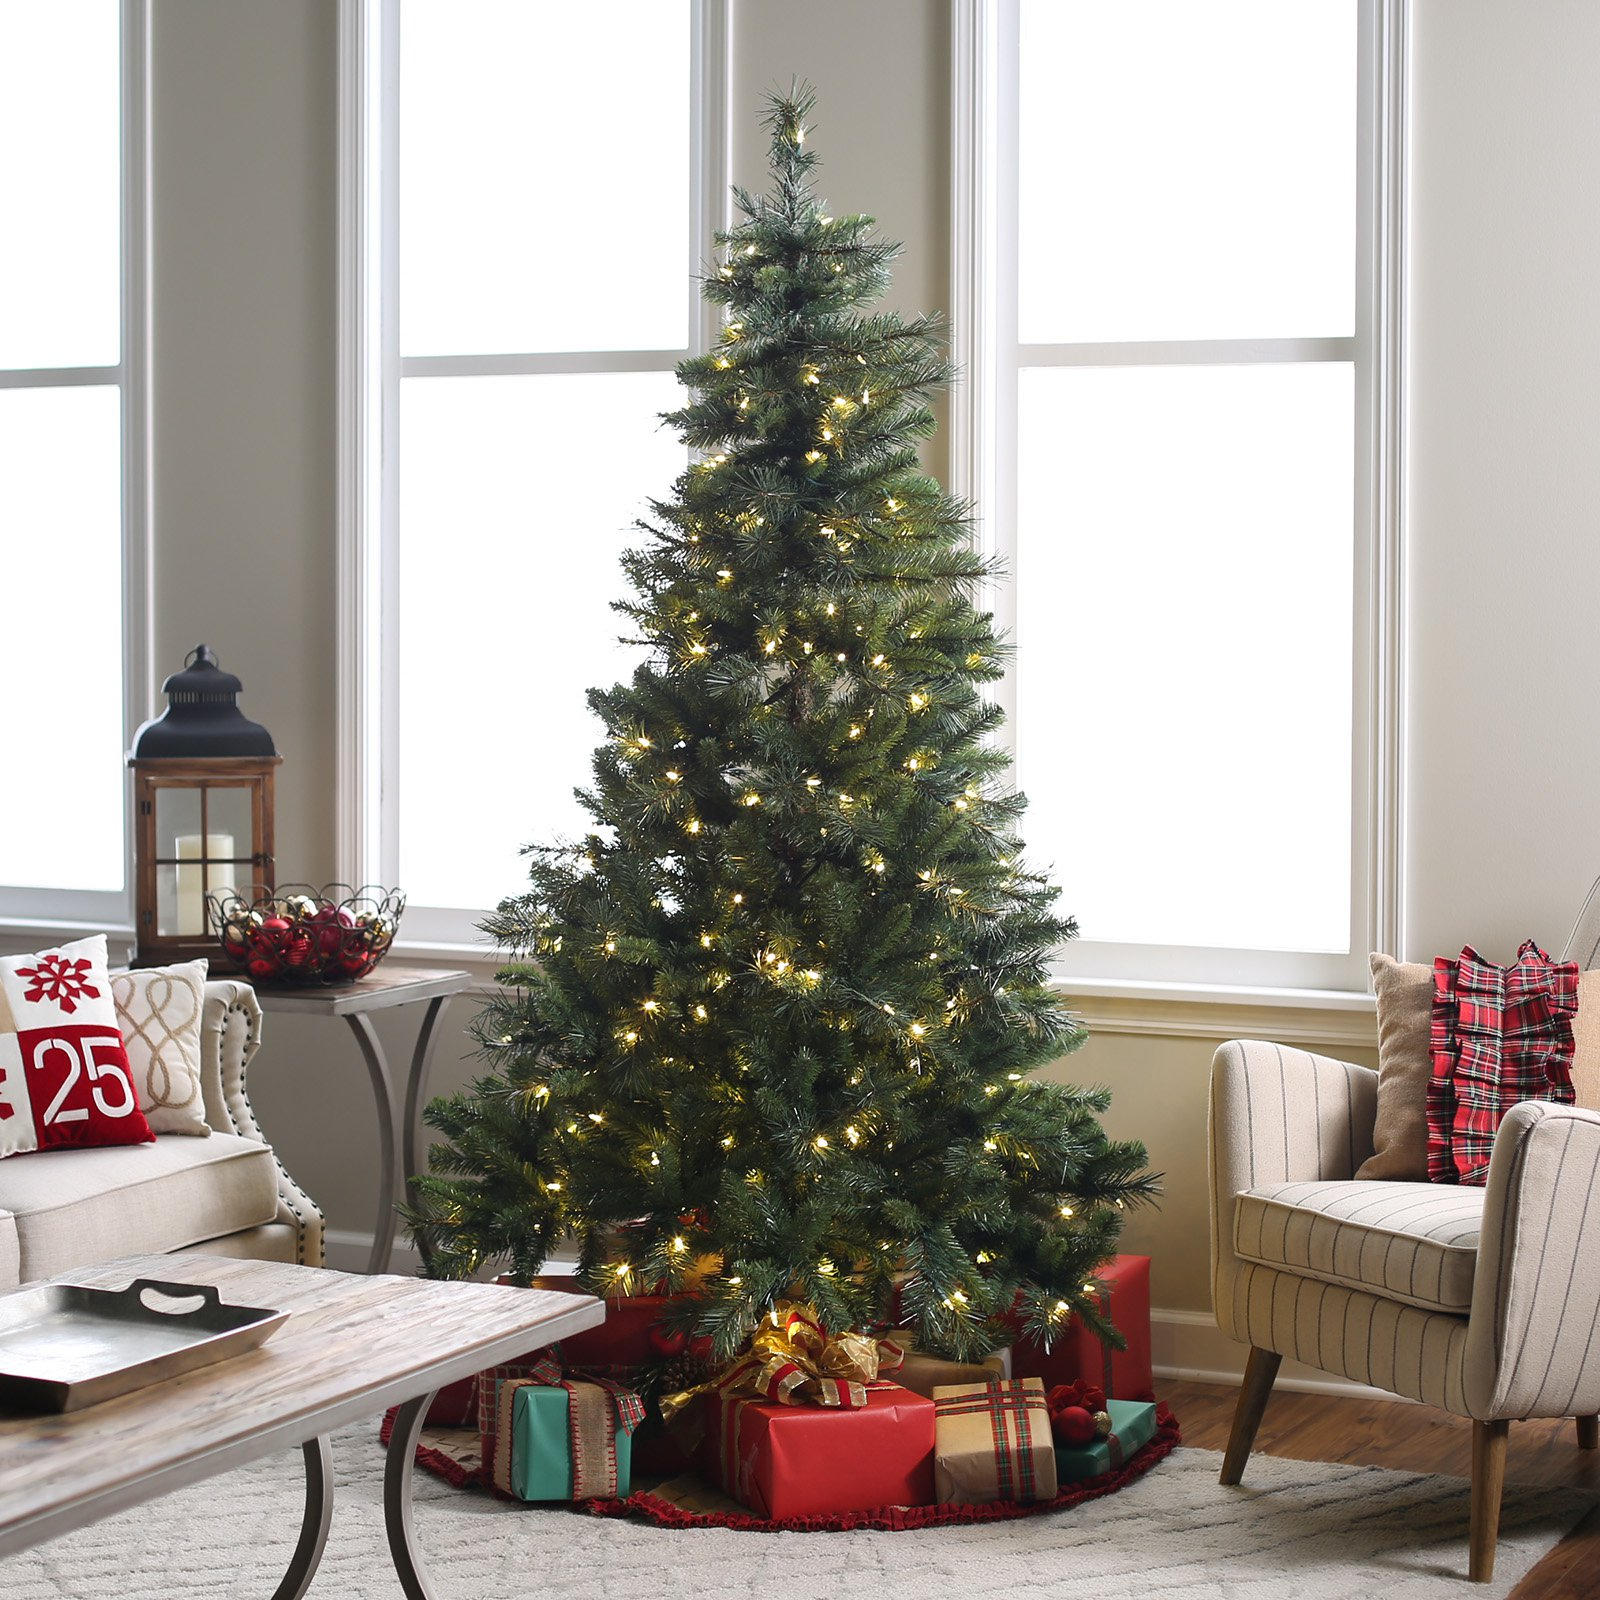 7 ft pre lit led emerald pine christmas tree with bluetooth multi function speaker by sterling tree company walmartcom - 7 Ft Christmas Tree